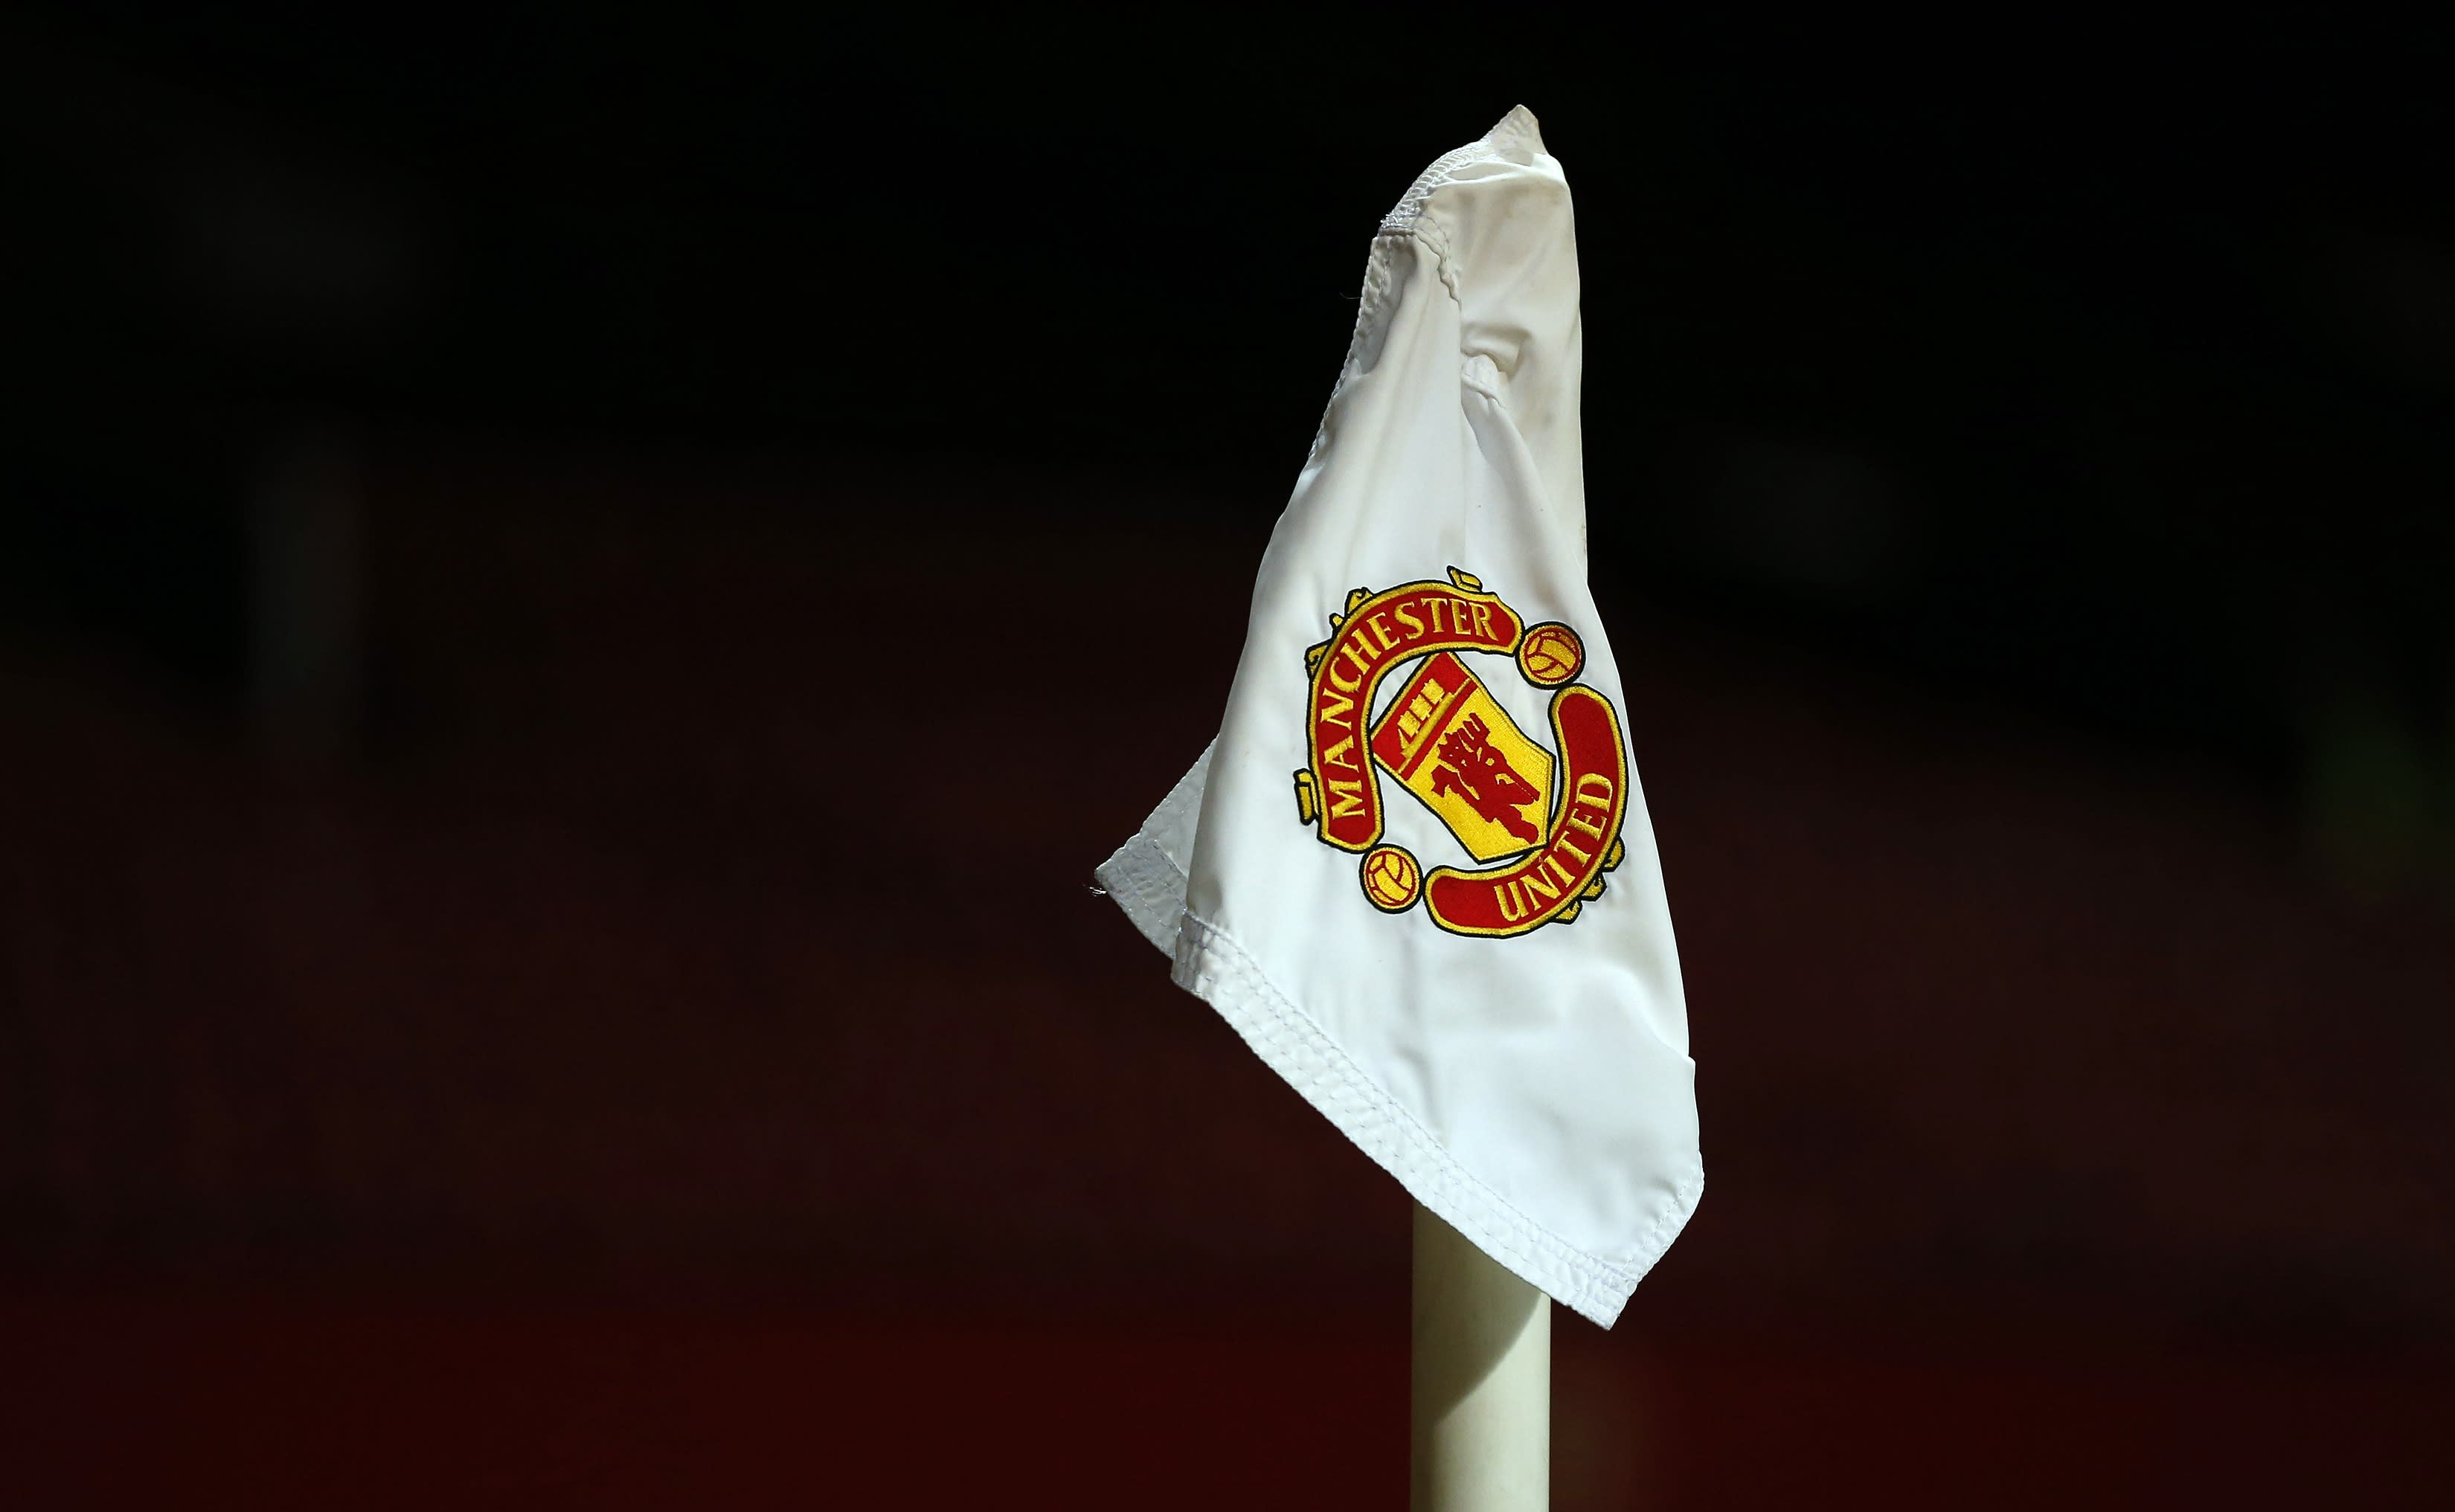 Premier League: 12-year-old Bosnian wonderkid offered Man United deal